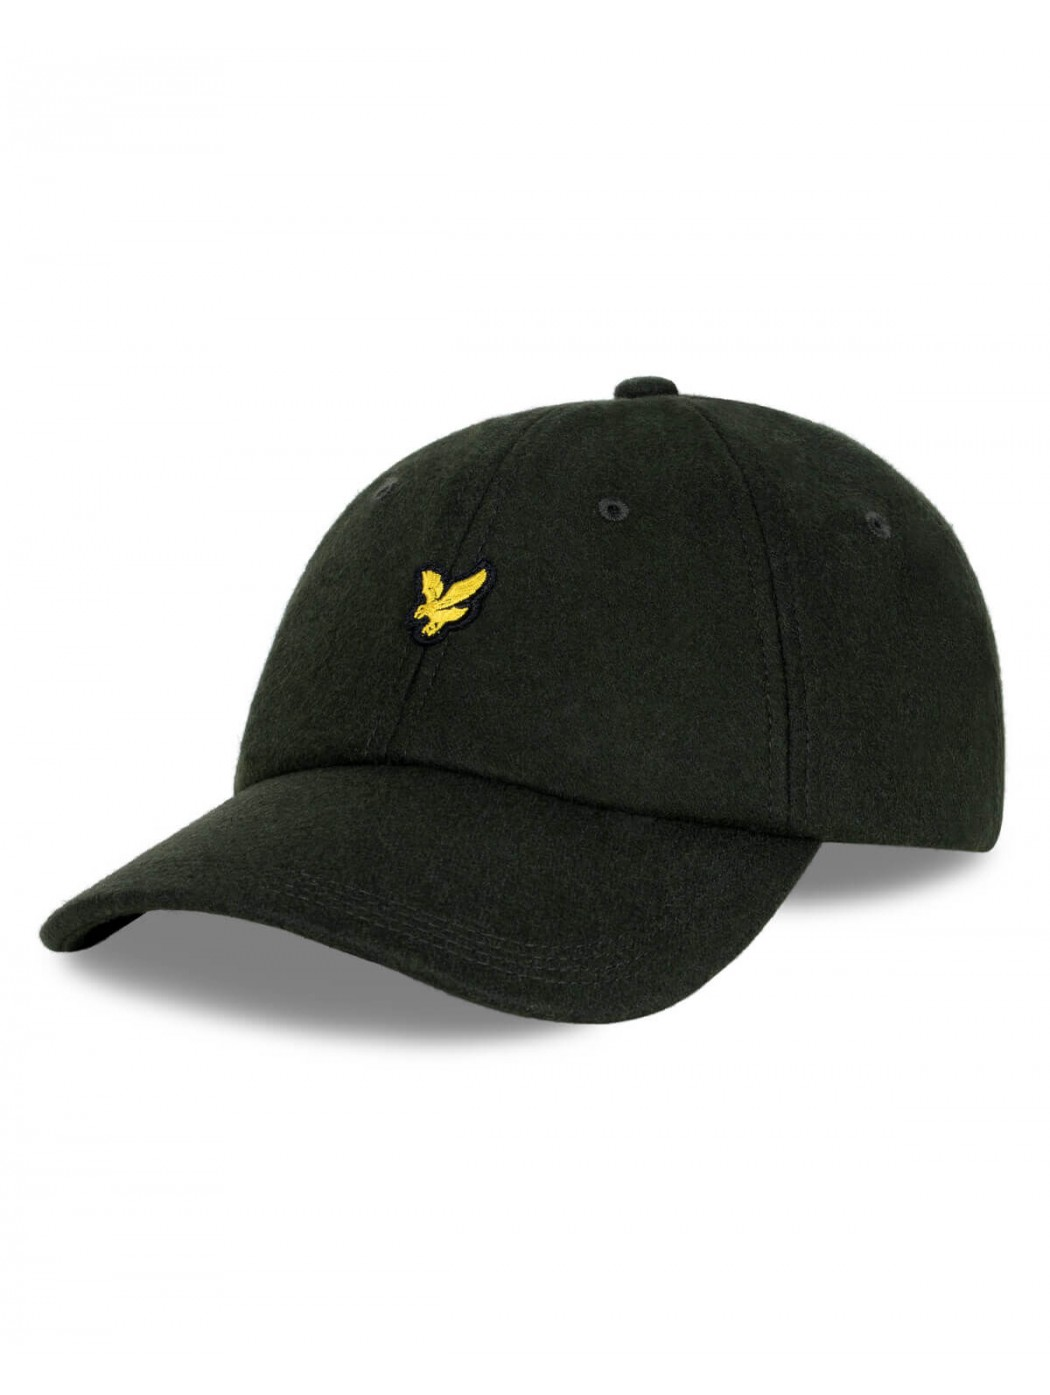 BERRETTO DA BASEBALL LYLE & SCOTT HE1100A Z597